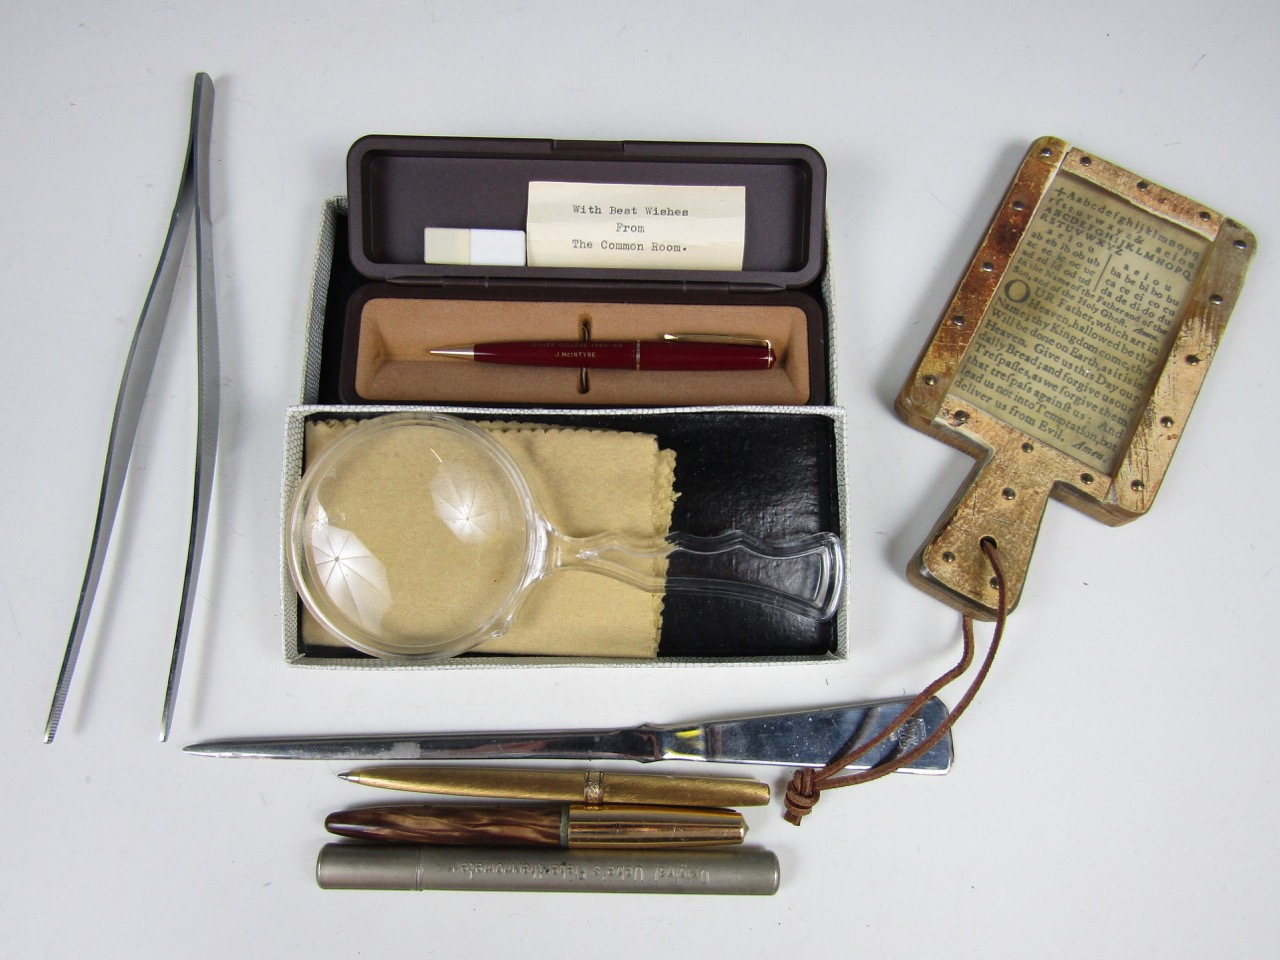 Lot 13 - Sundry collectors' items including a Parker pencil, a letter opener, a magnifying lens and a novelty